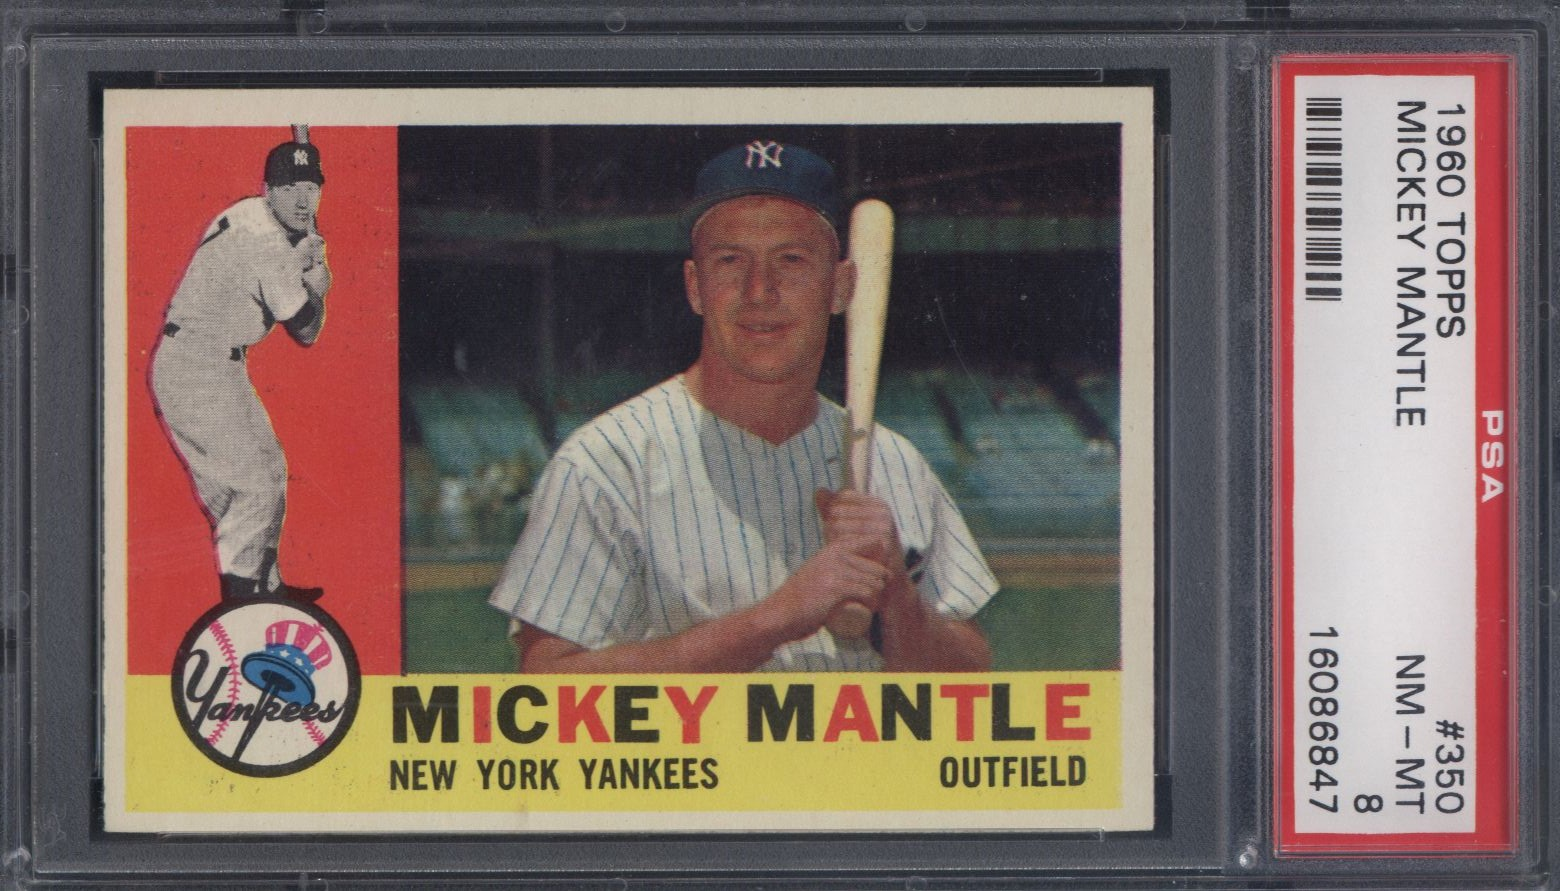 The 1960 Topps Baseball Psa Set Collection Just Collect Blog